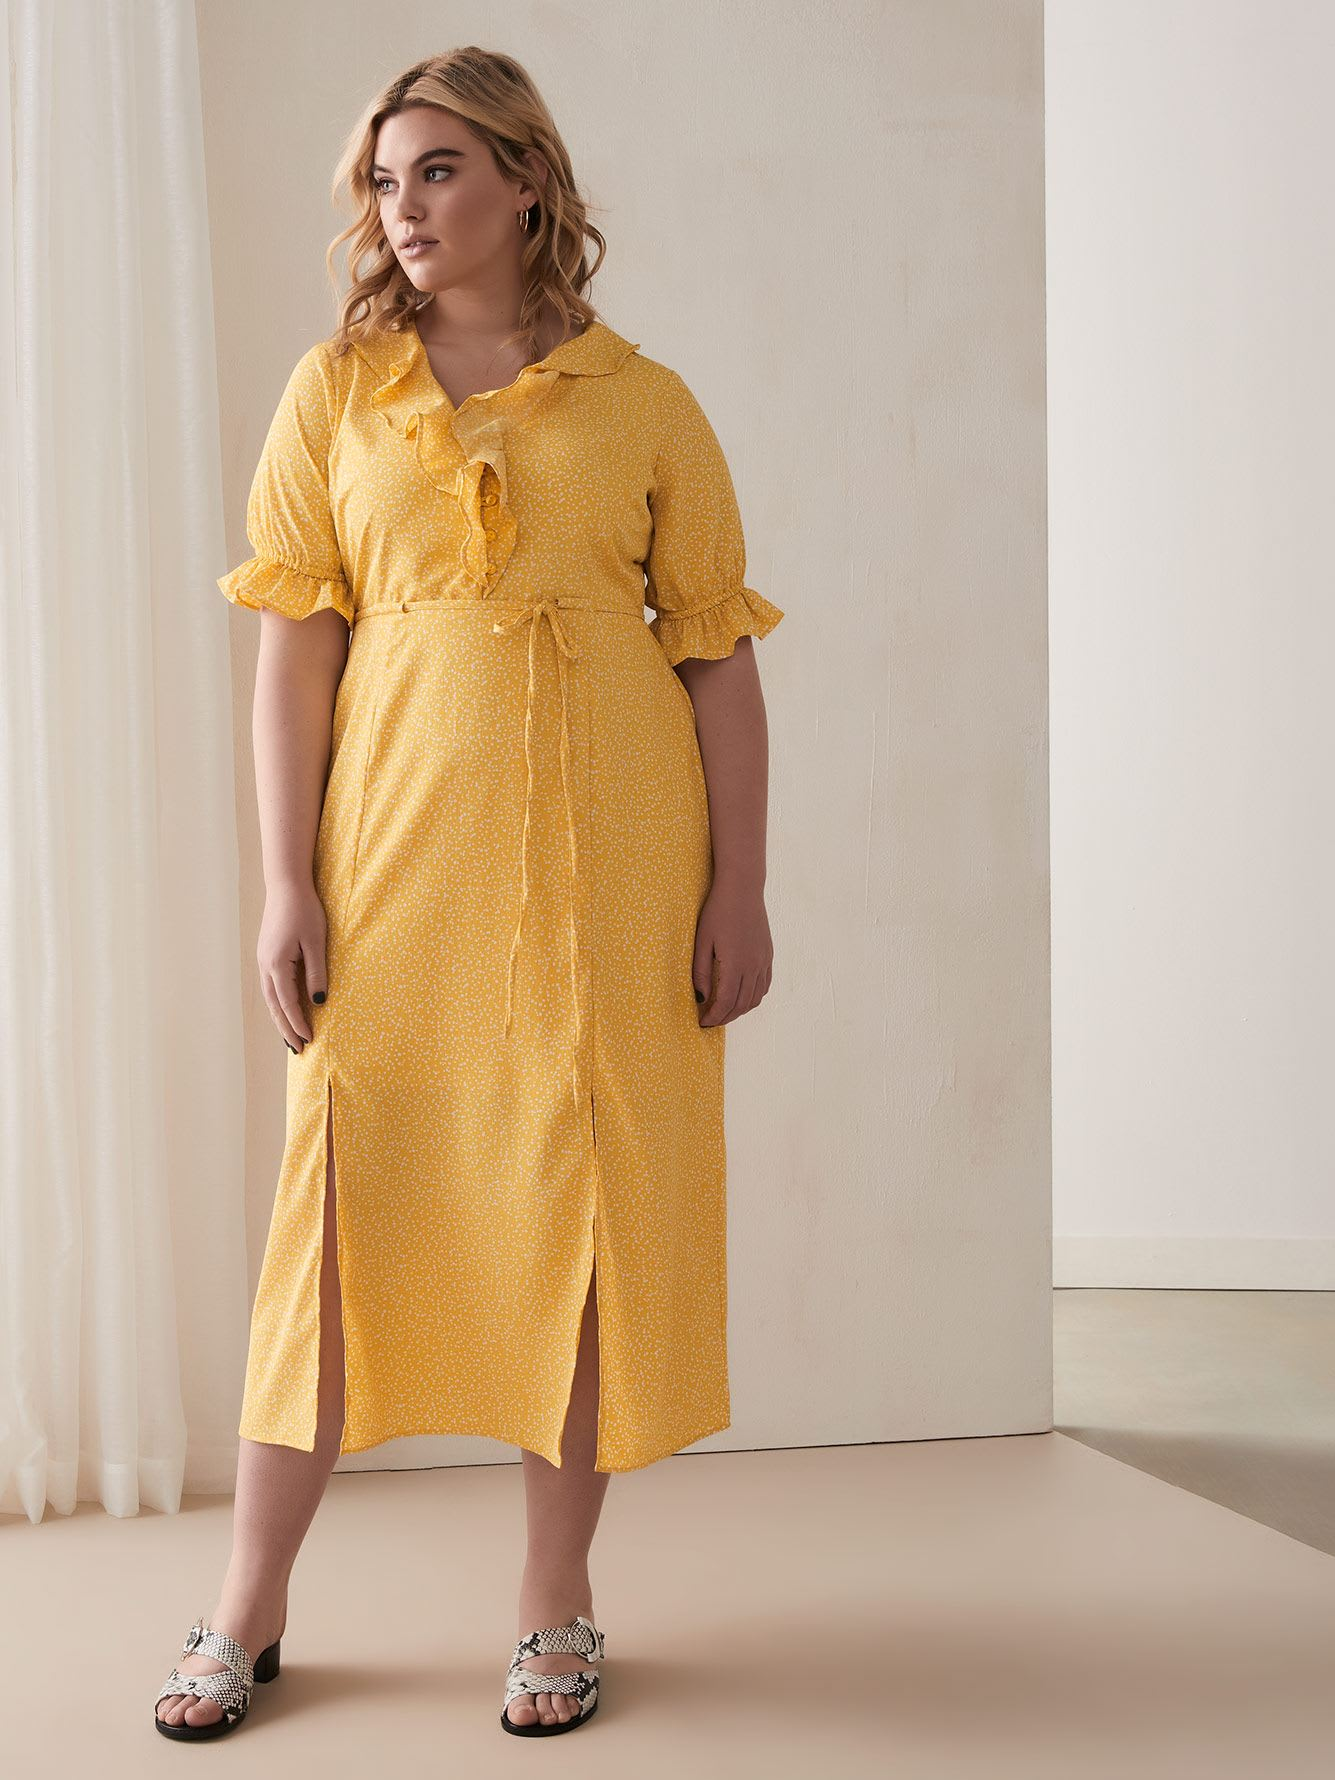 Polka Dot Yellow Frilled Dress - Lost Ink